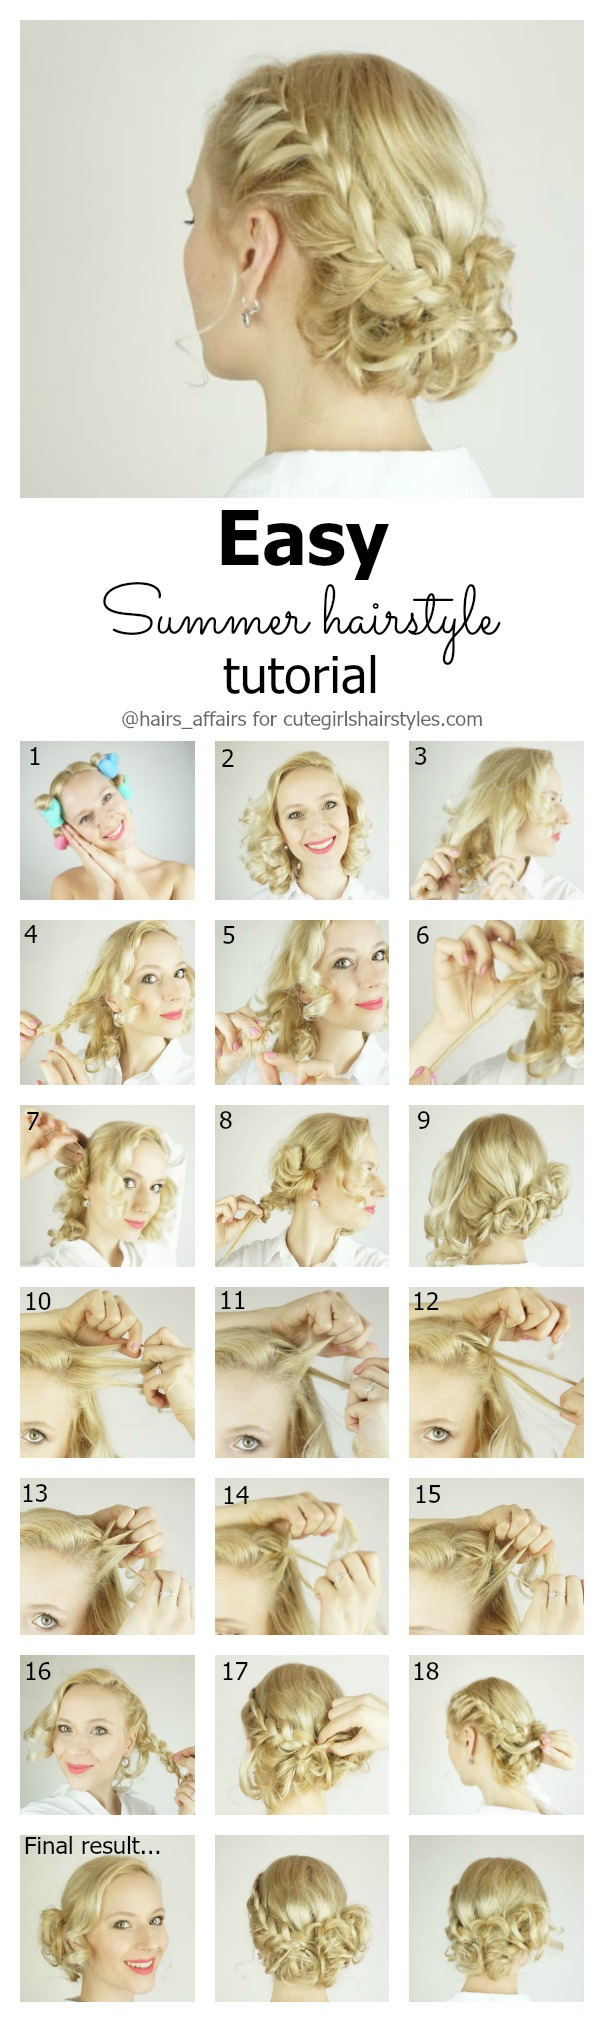 Easy summer hairstyle tutorial